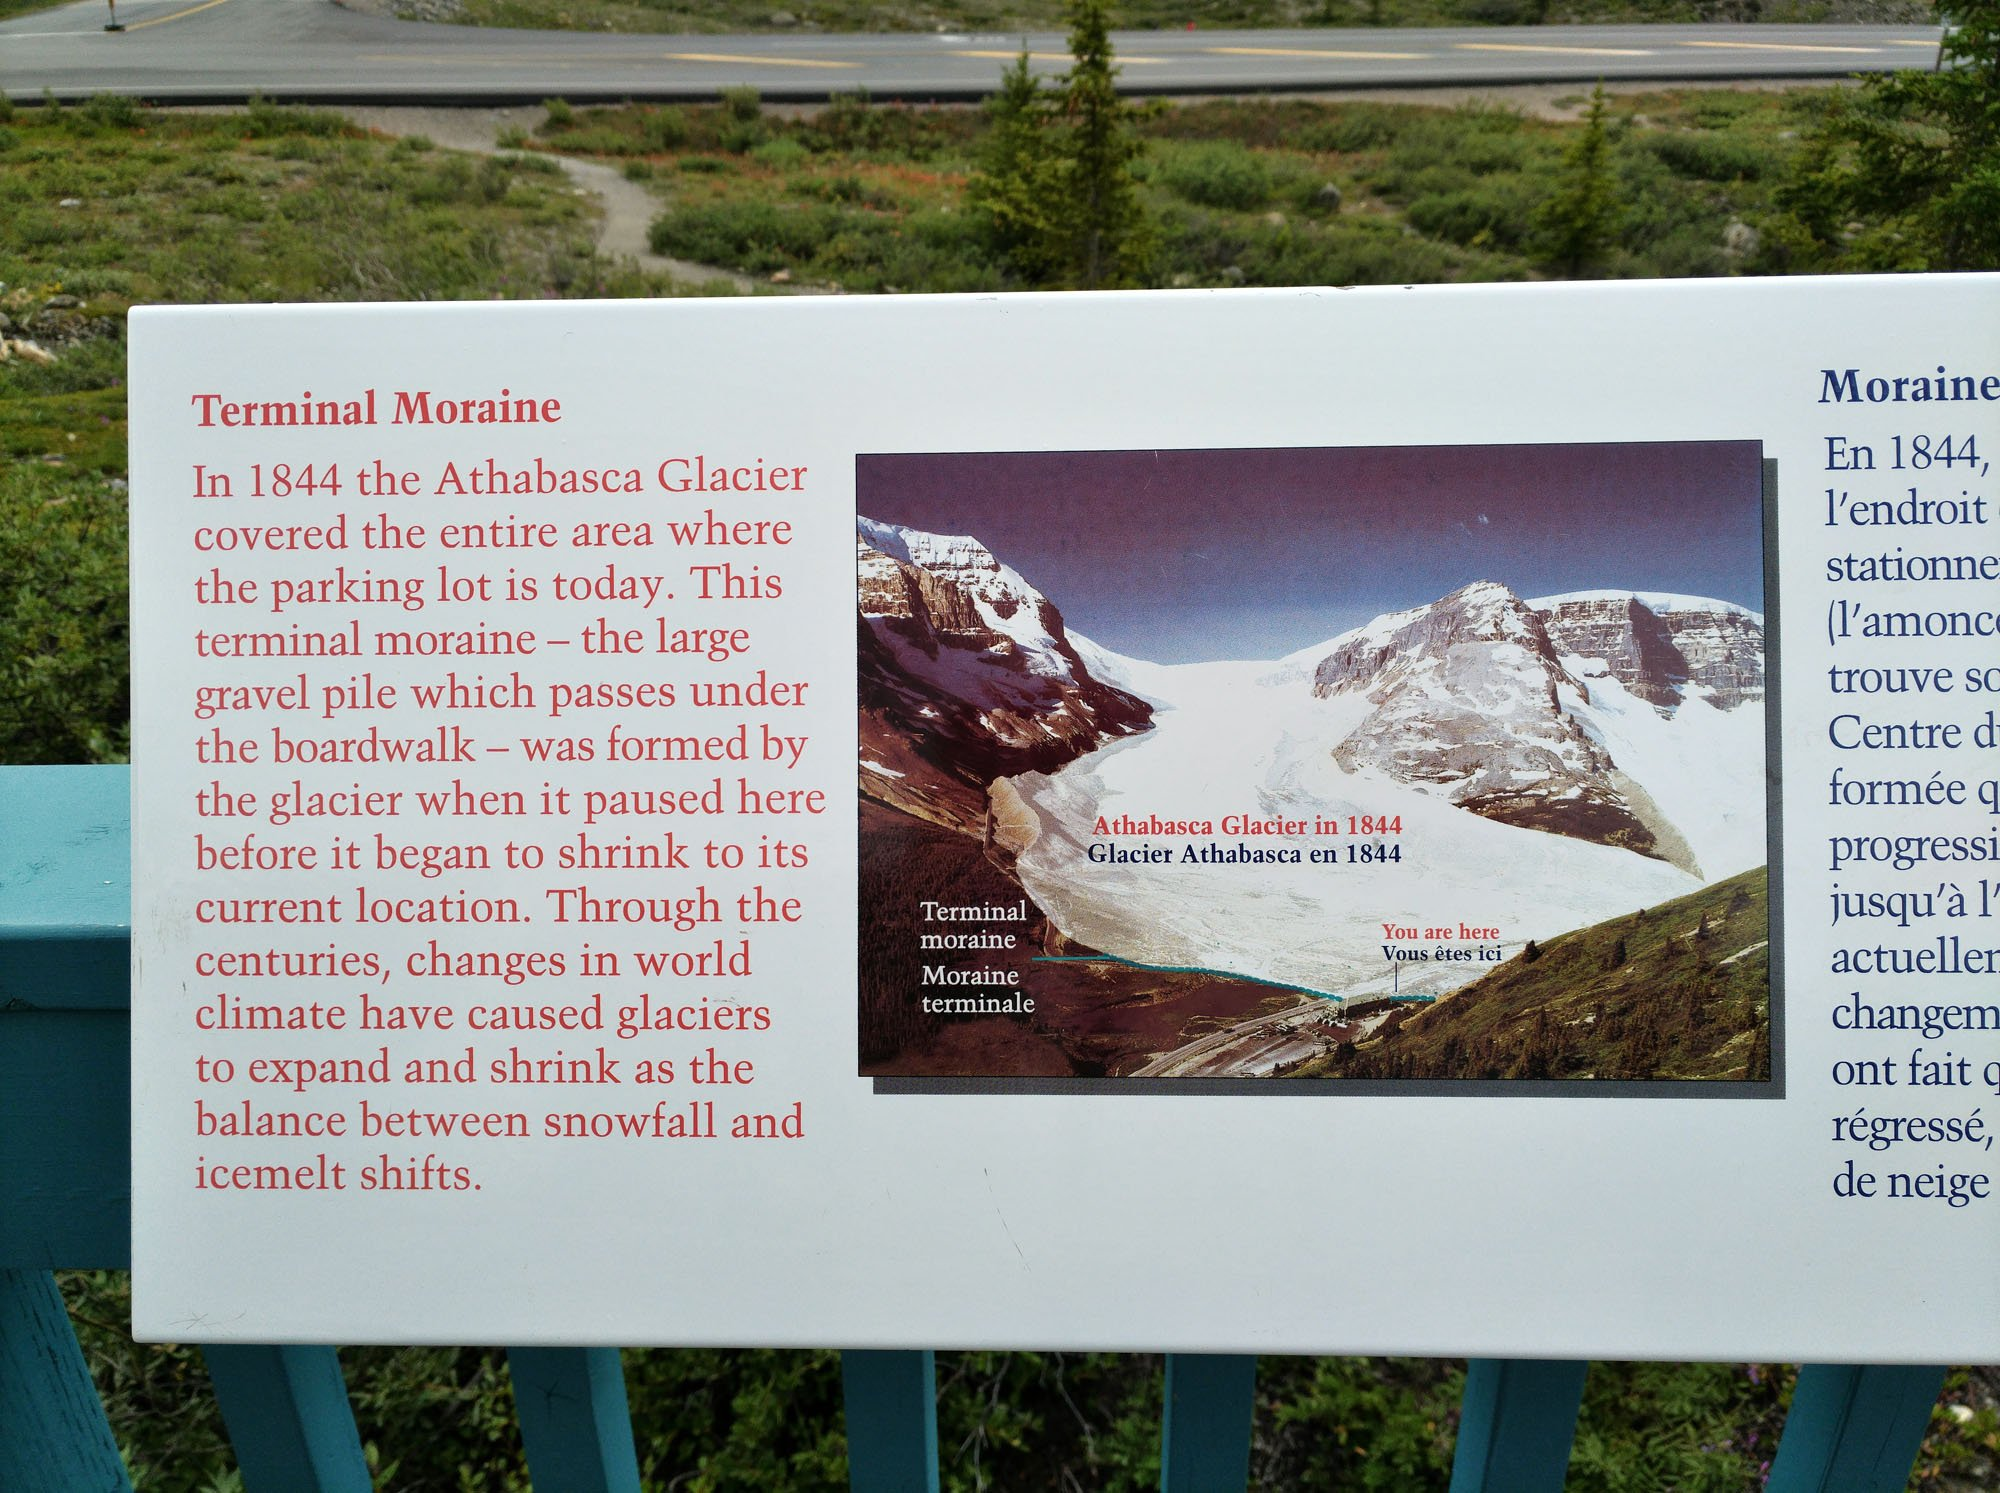 The size of the Athabasca Glacier has varied over time. This century it has been hastening decline. (Craig Davis/Craigslegztravels.com)